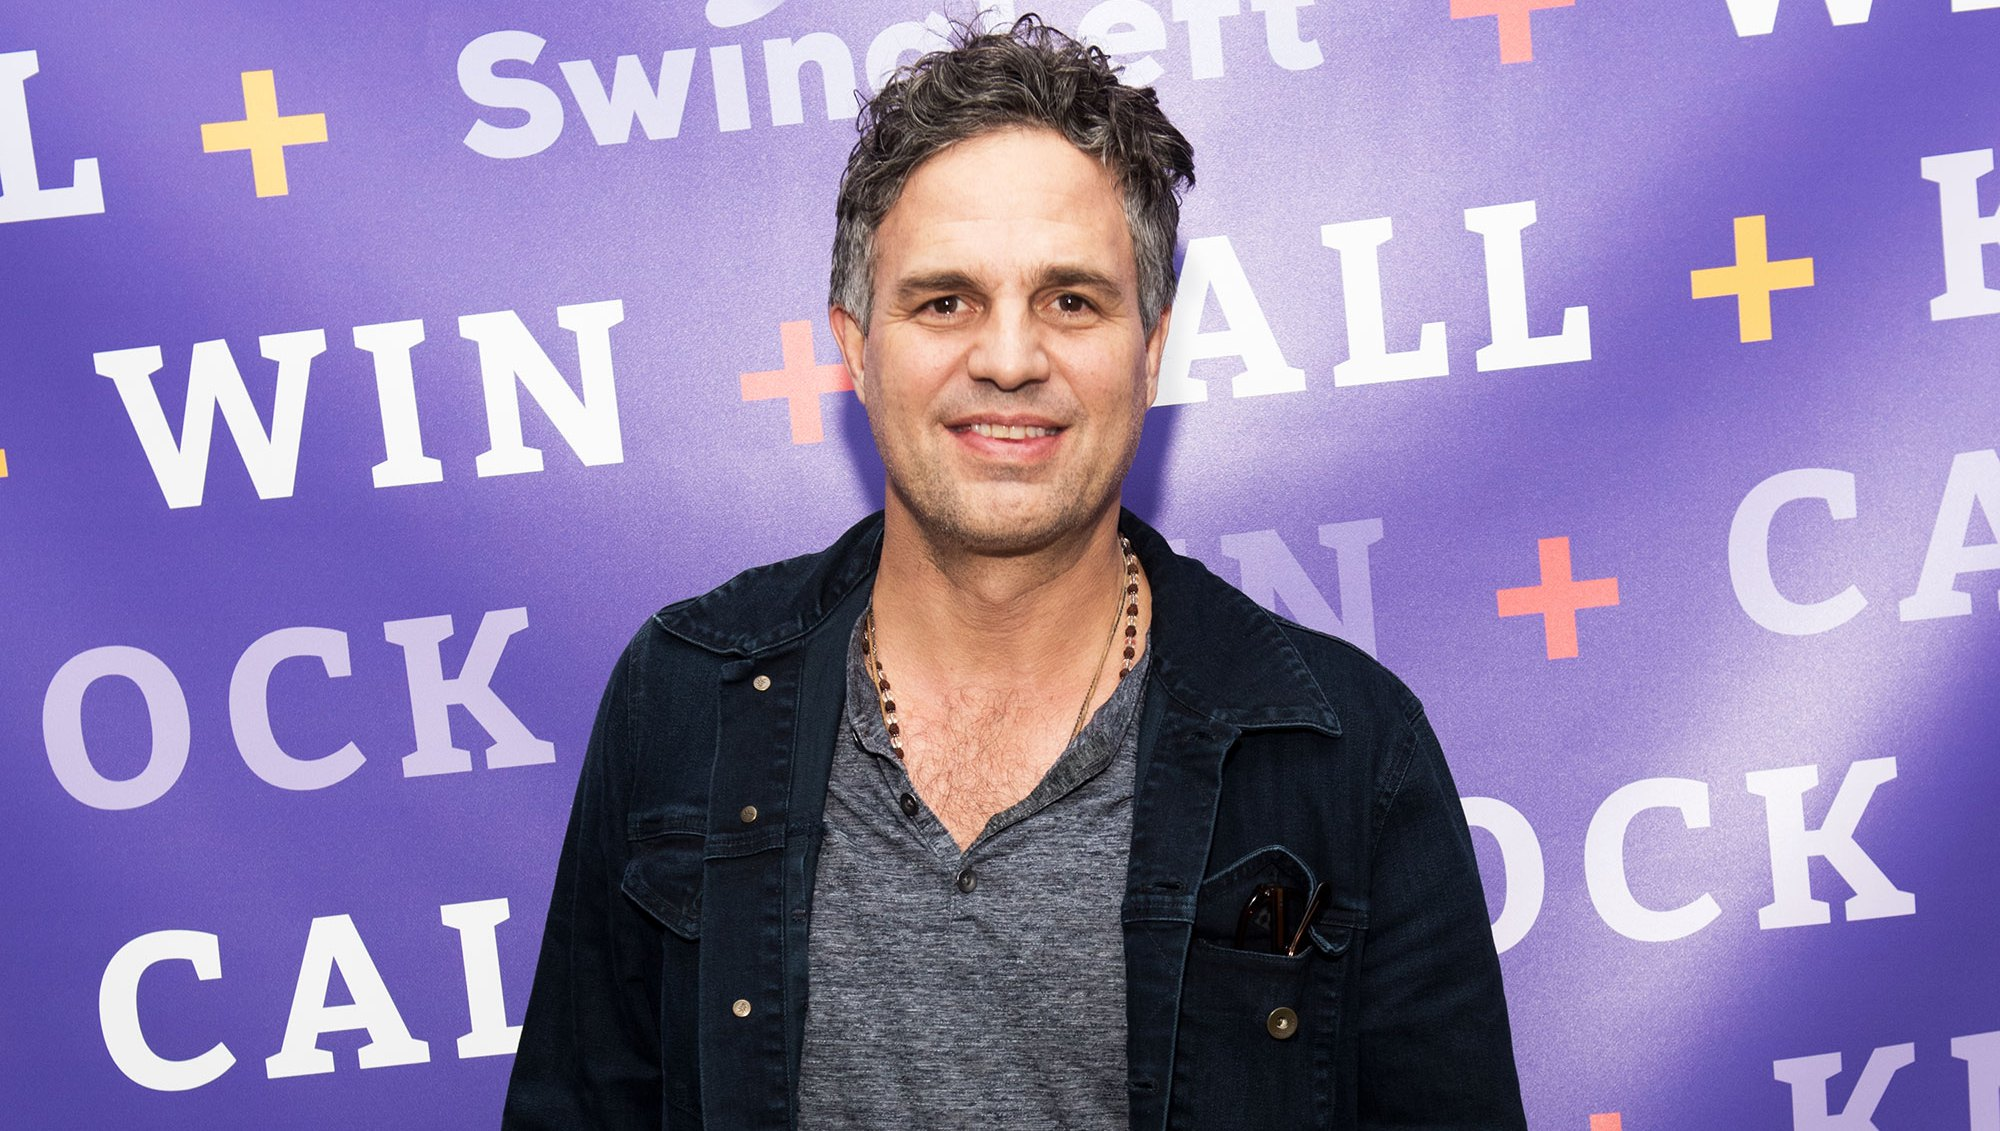 Mark Ruffalo Gives Away $100 Starbucks Gift Card to Encourage Others to Pay it Forward